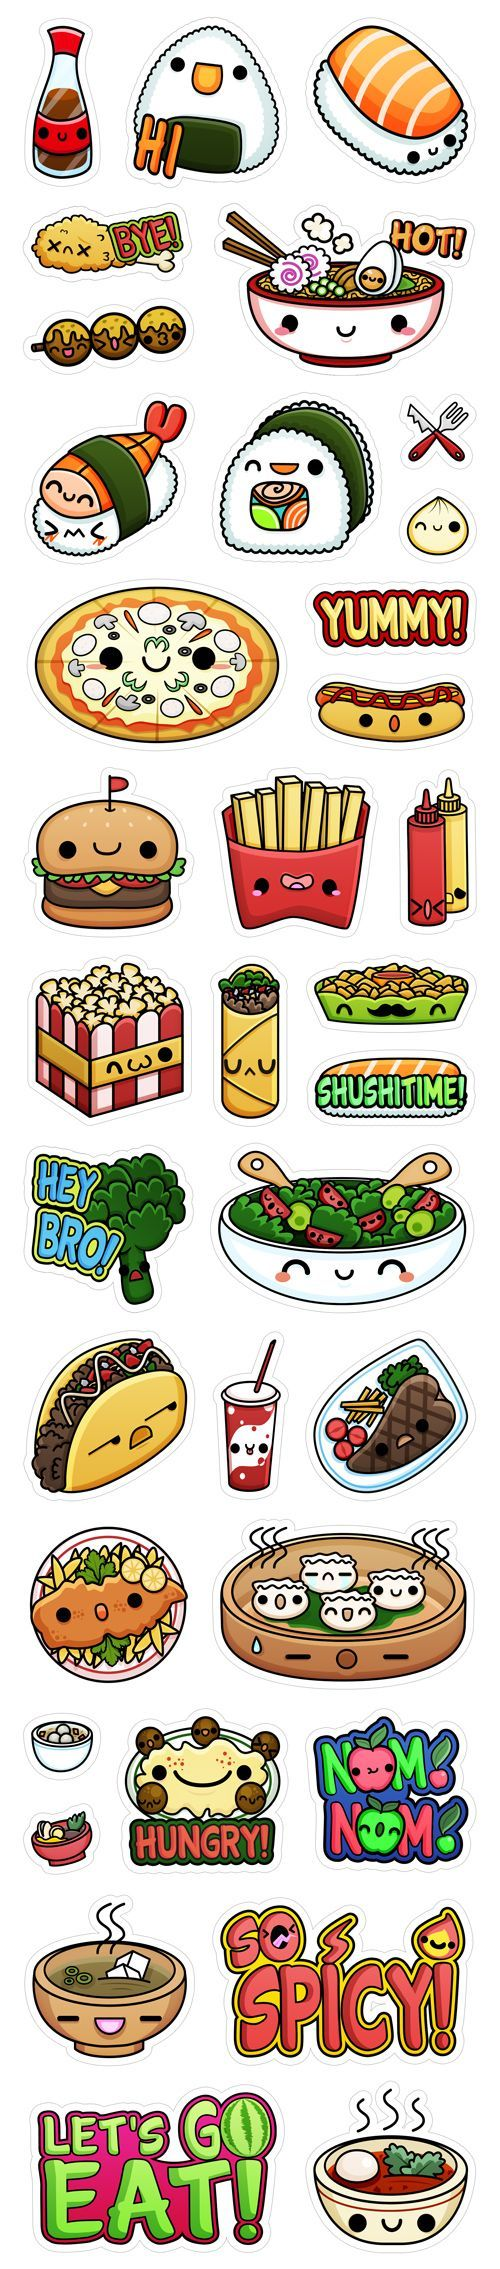 Viber's Kawaii Food Stickers by Squid and Pig www.squidandpig.com   cute cartoons   Pinterest